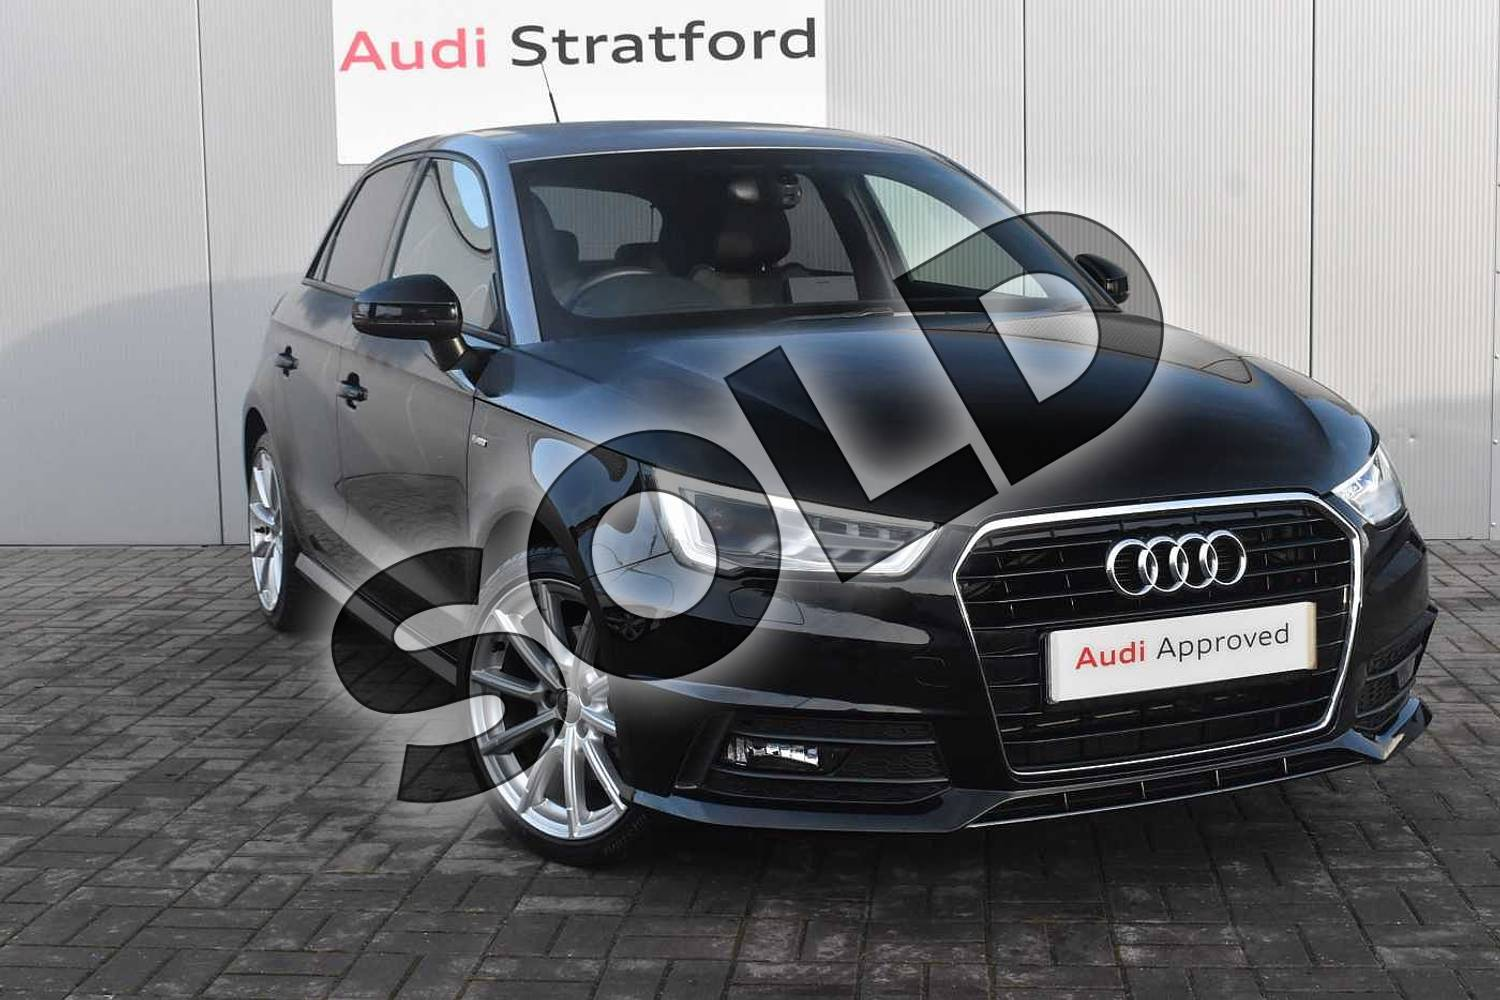 2017 Audi A1 Sportback 1.4 TFSI S Line 5dr in Brilliant Black at Coventry Audi